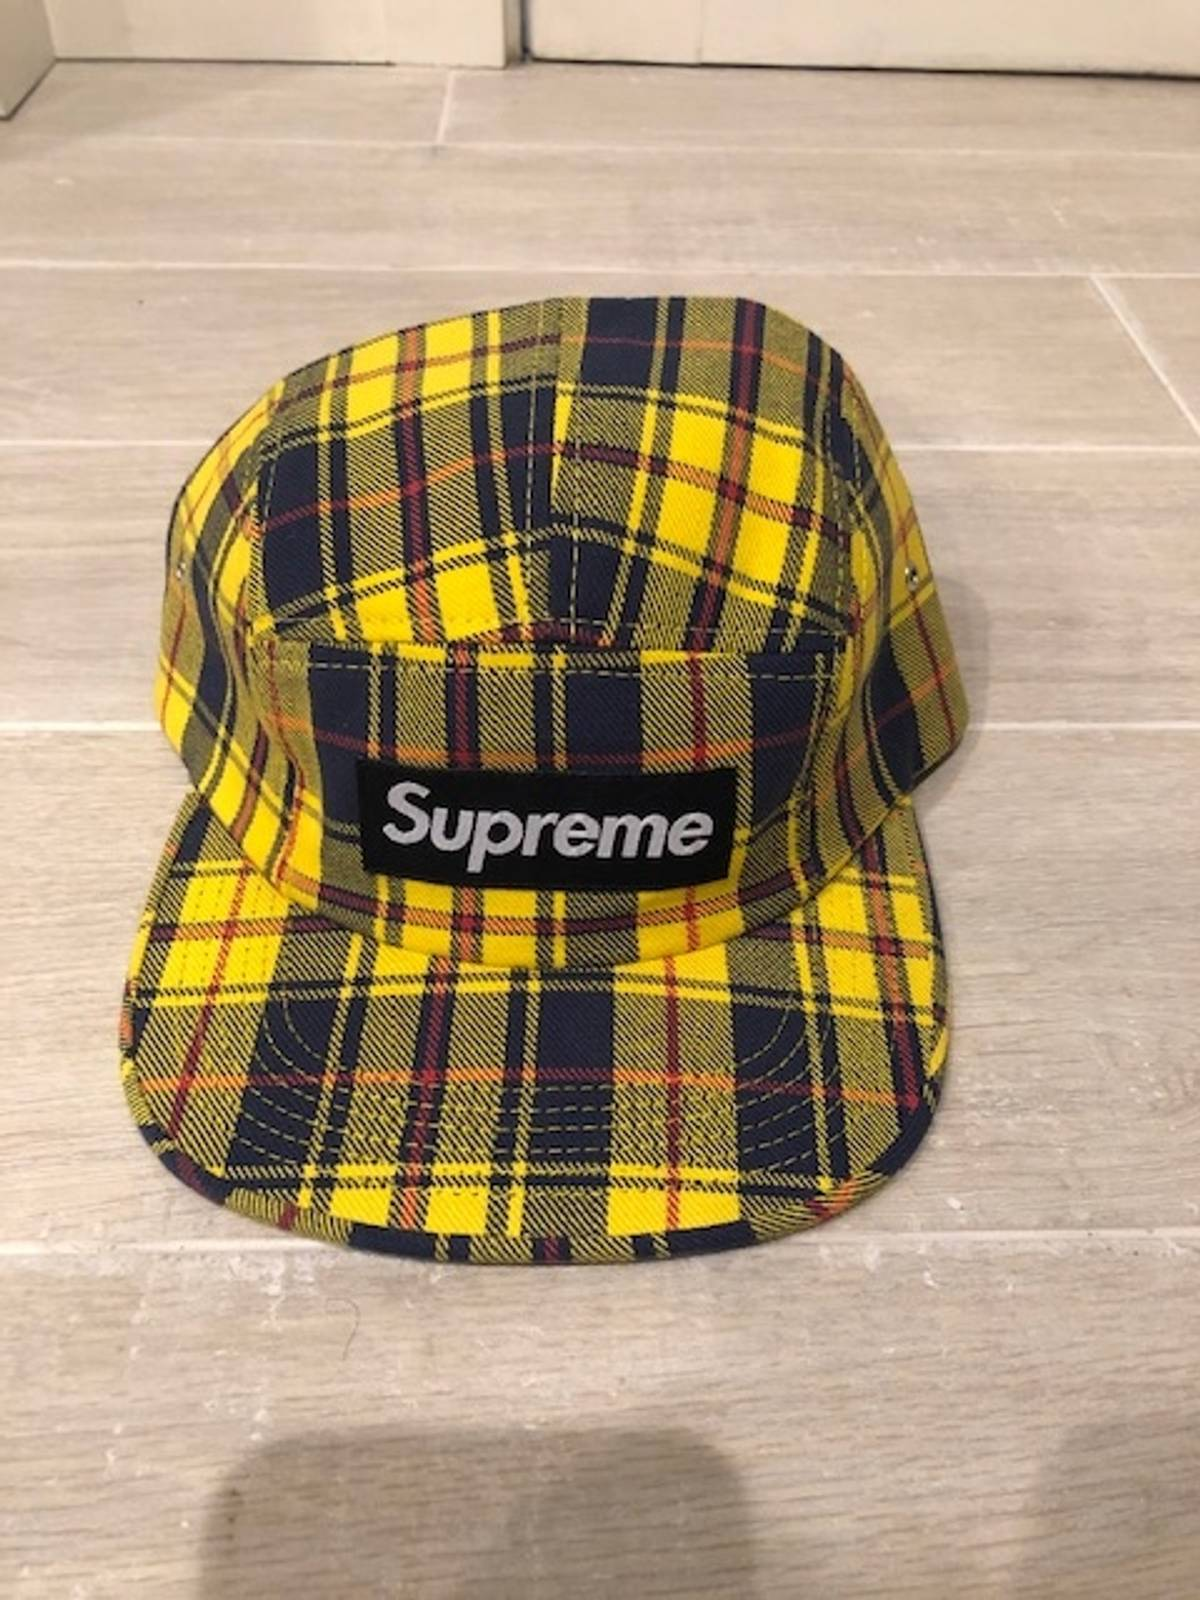 Supreme Supreme Plaid Hat Yellow Blue   Red NEVER WORN Size one size - Hats  for Sale - Grailed 76f5f761edd